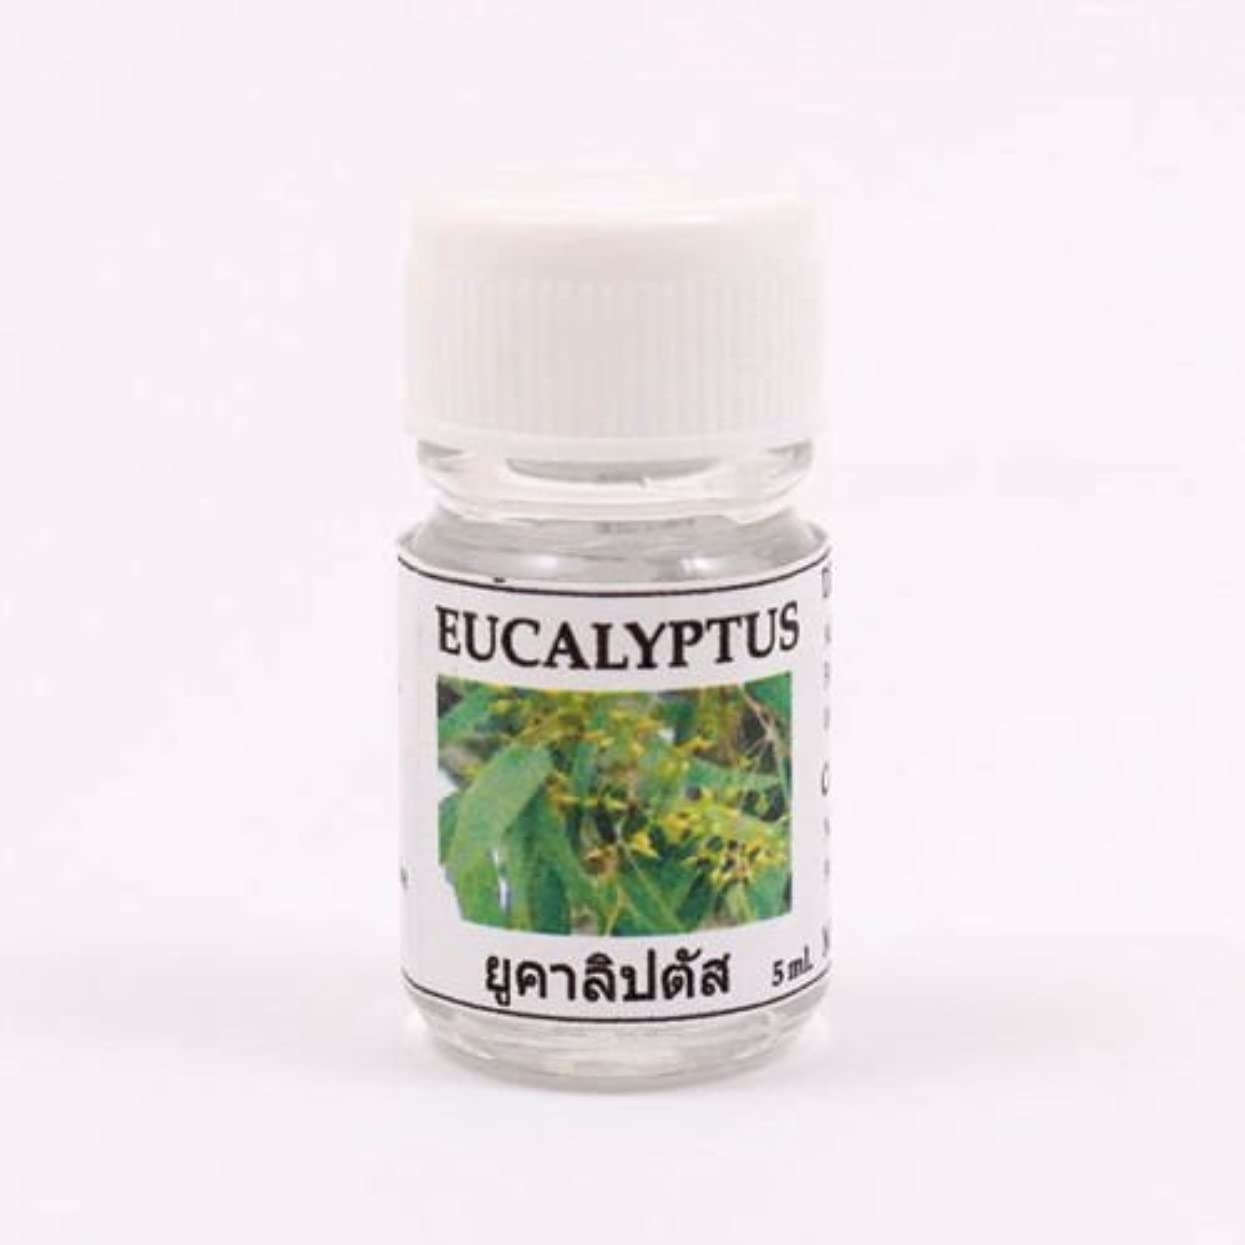 矛盾する荒廃する農民6X Eucalyptus Aroma Fragrance Essential Oil 5ML cc Diffuser Burner Therapy